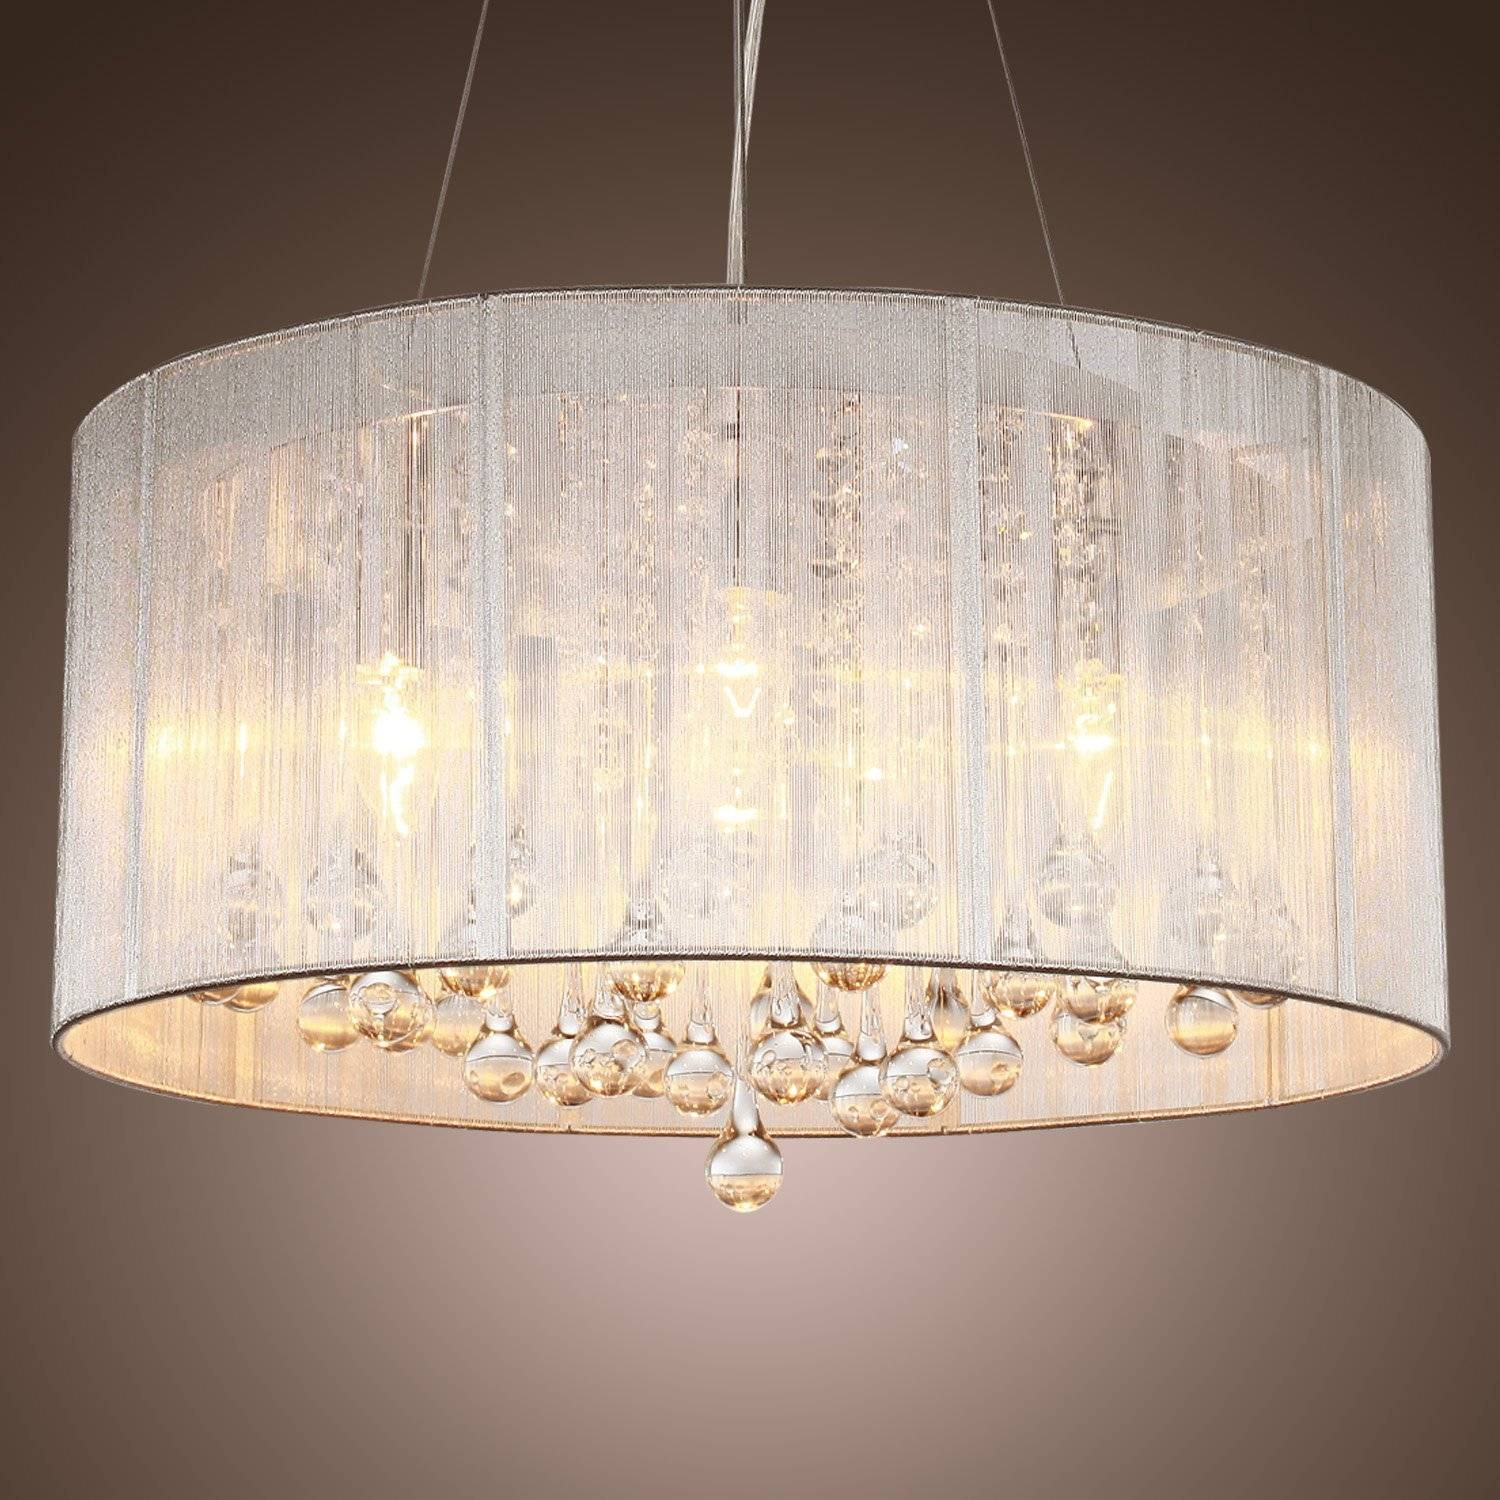 Drum Shade Chandelier With Crystals | Chandelier Models in Shell Light Shades Pendants (Image 3 of 15)